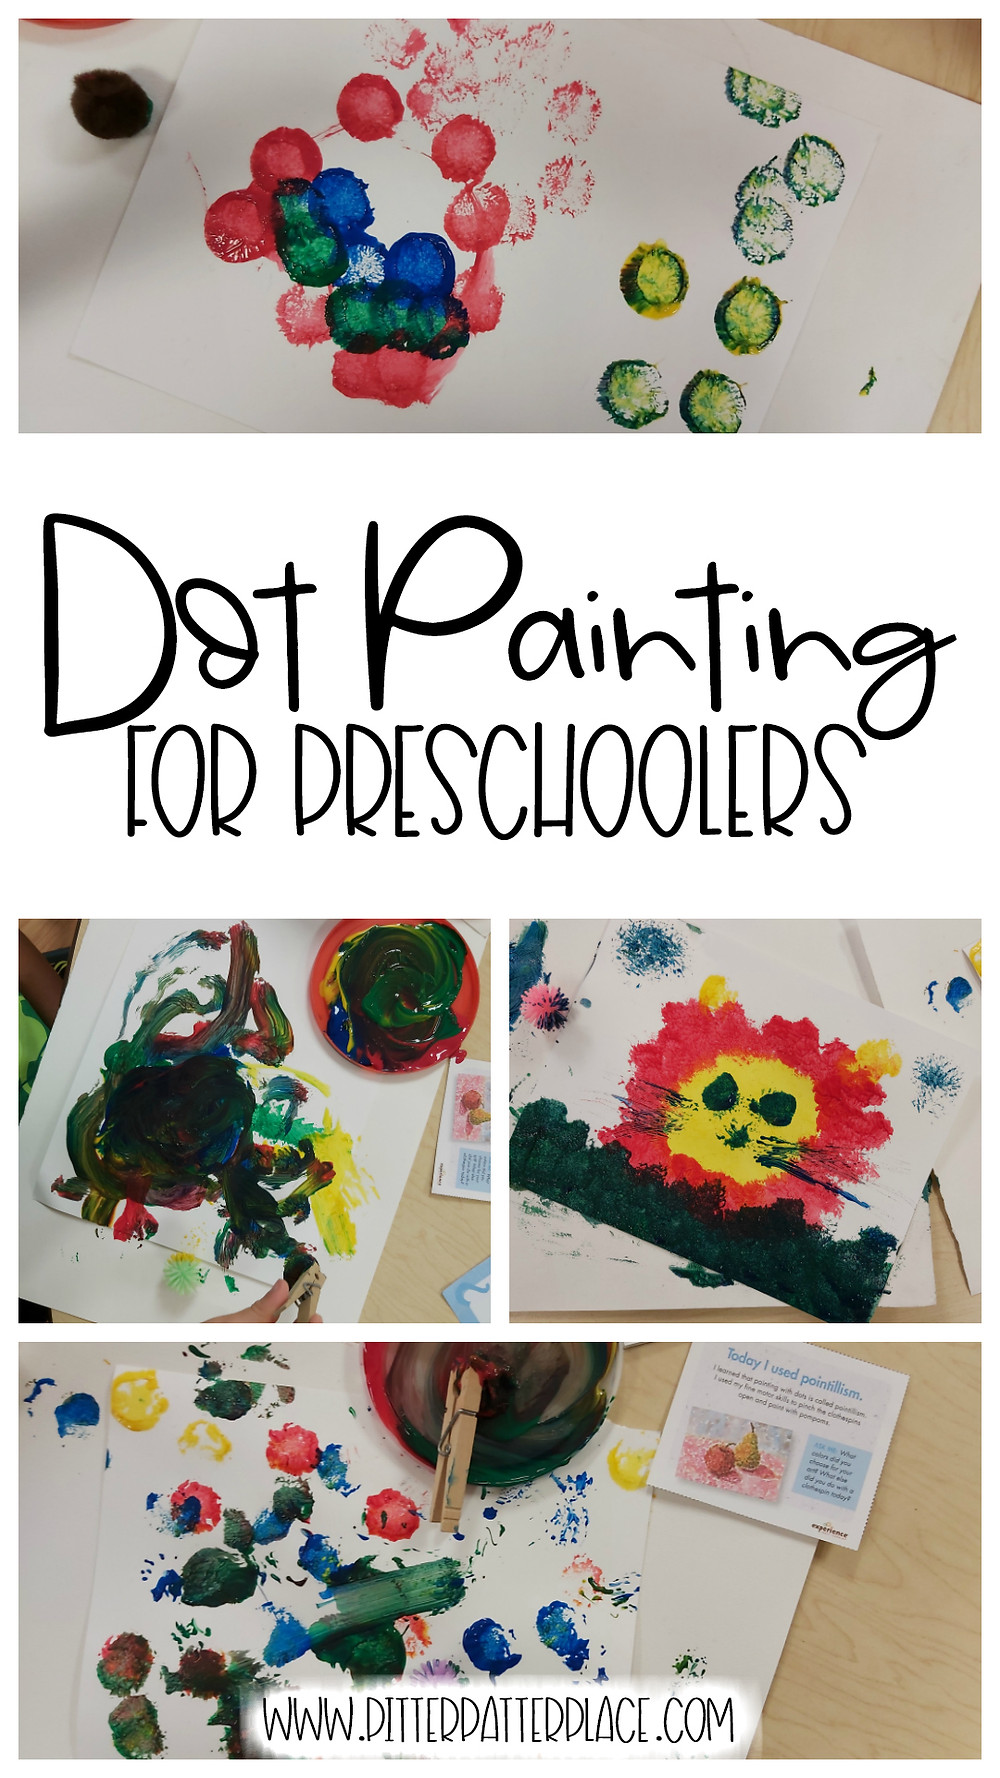 collage of preschool dot painting art with text: Dot Painting for Preschoolers